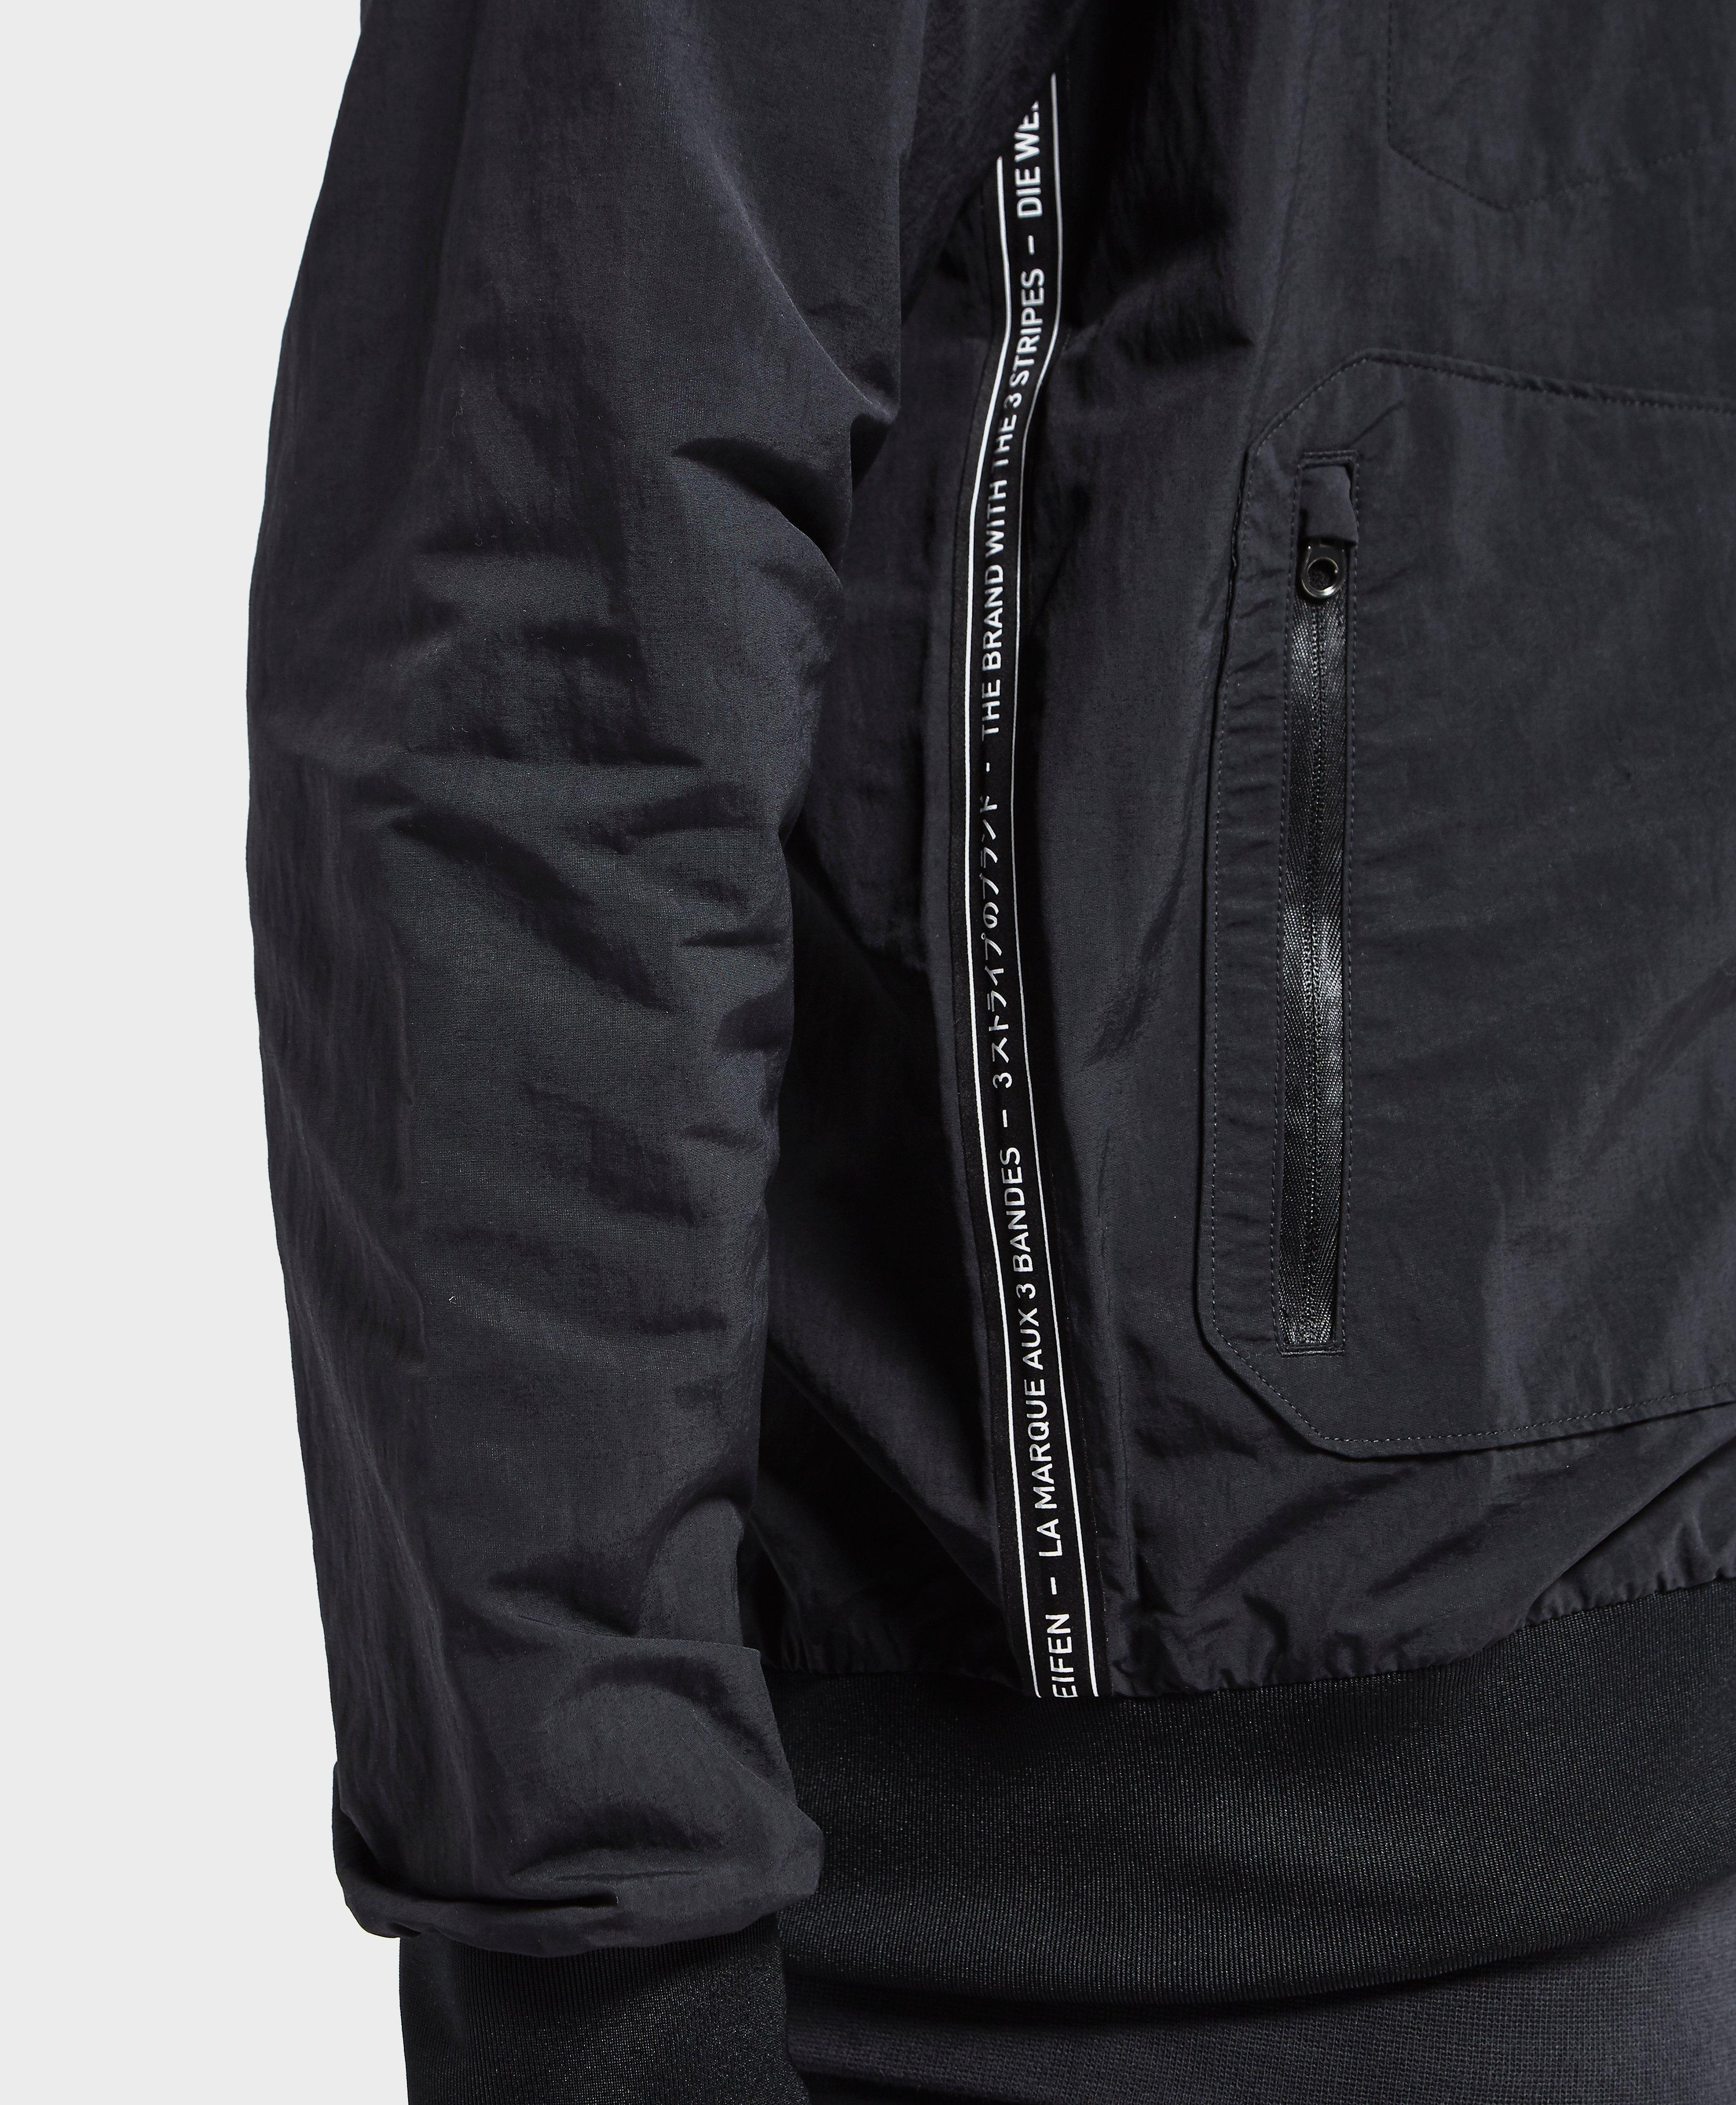 e609c3760 Lyst - adidas Originals Nmd Bomber Jacket in Black for Men